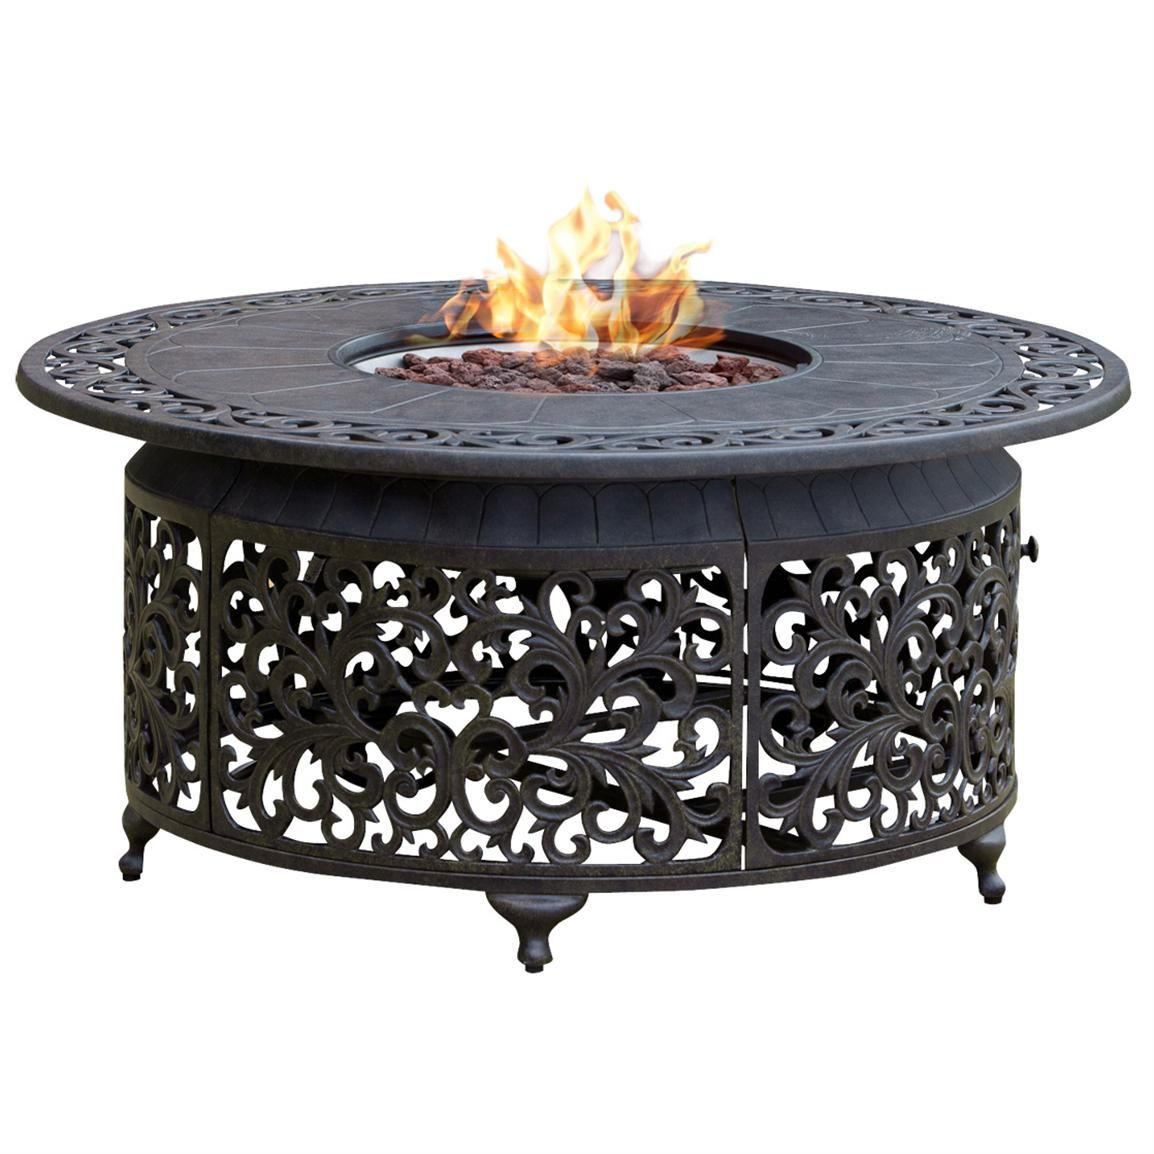 Propane Cast Aluminum Fire Pit With Scroll Design Click To View Full Size Image Propane Fire Pit Table Outdoor Propane Fire Pit Fire Pit